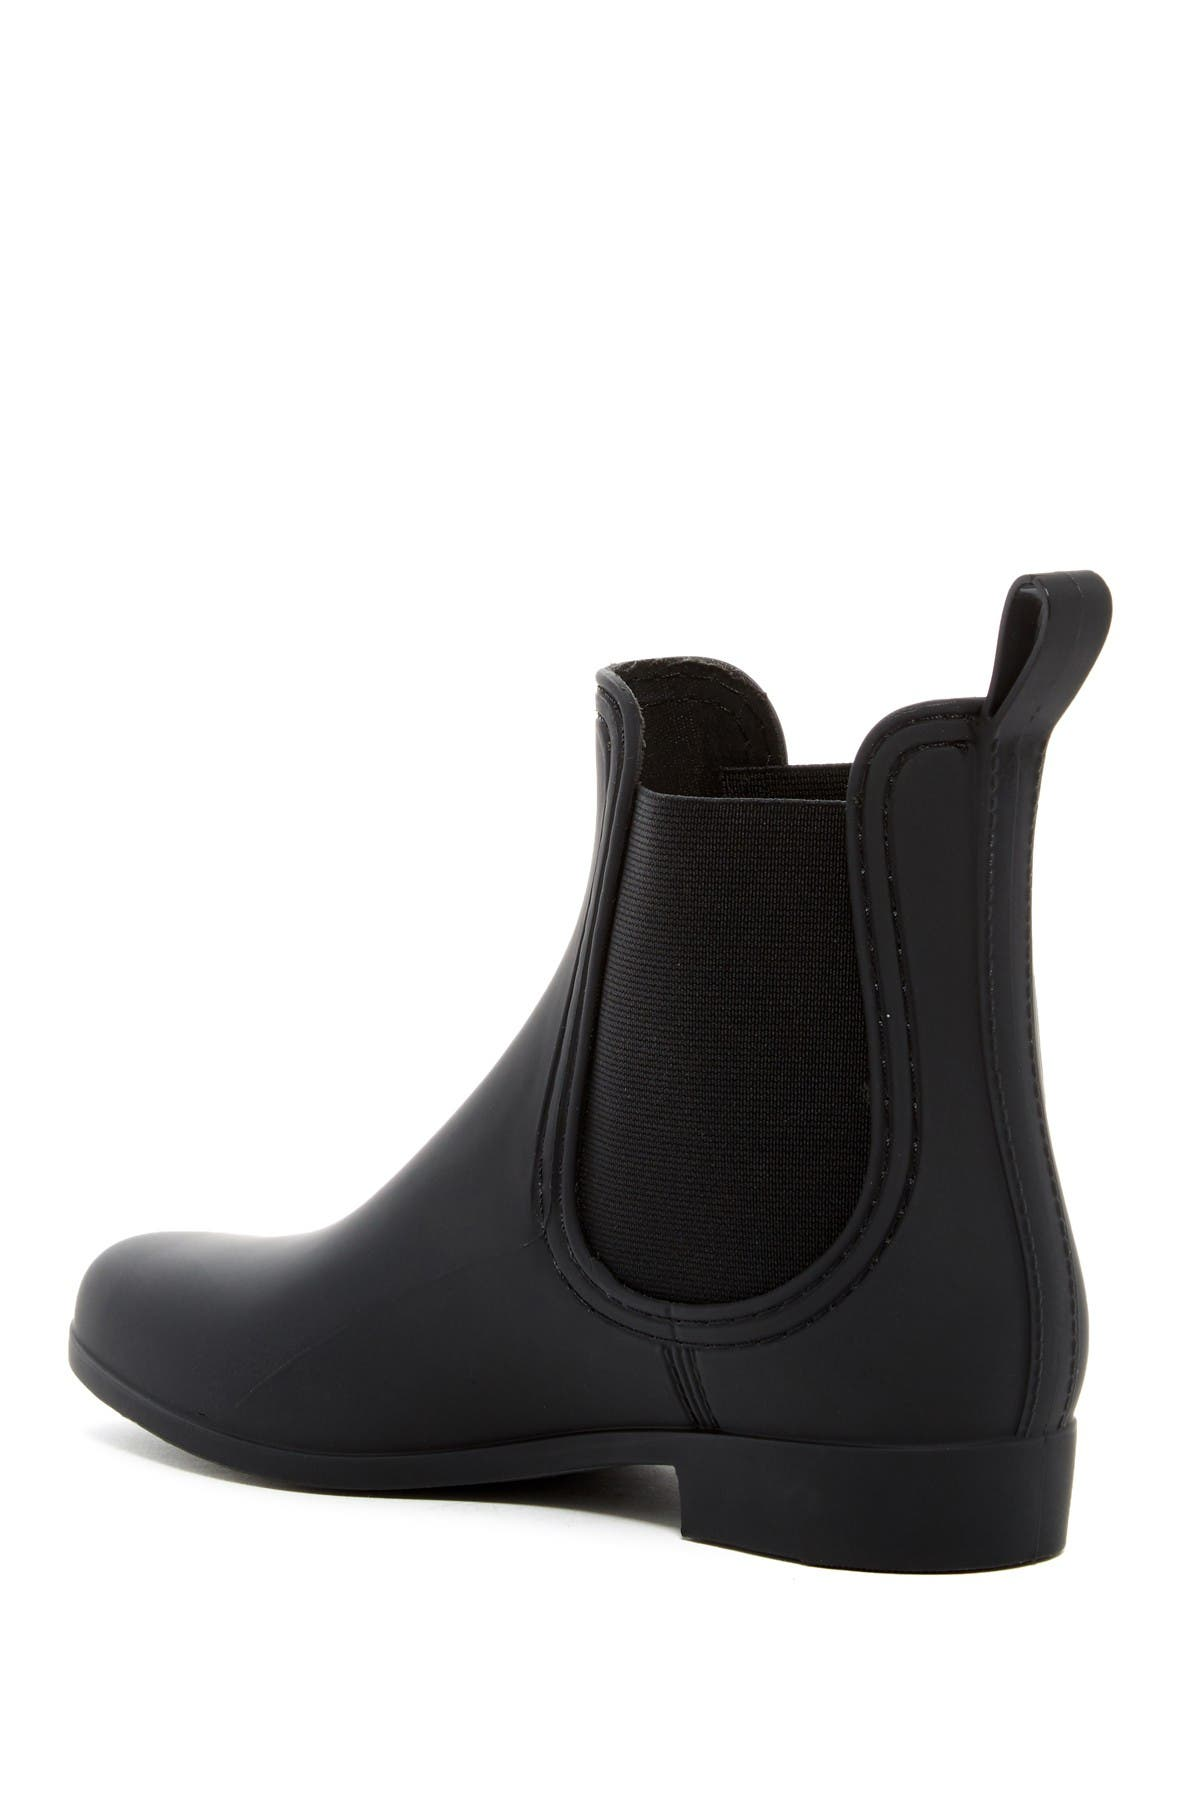 Image of Jeffrey Campbell Forecast Chelsea Waterproof Rain Boot